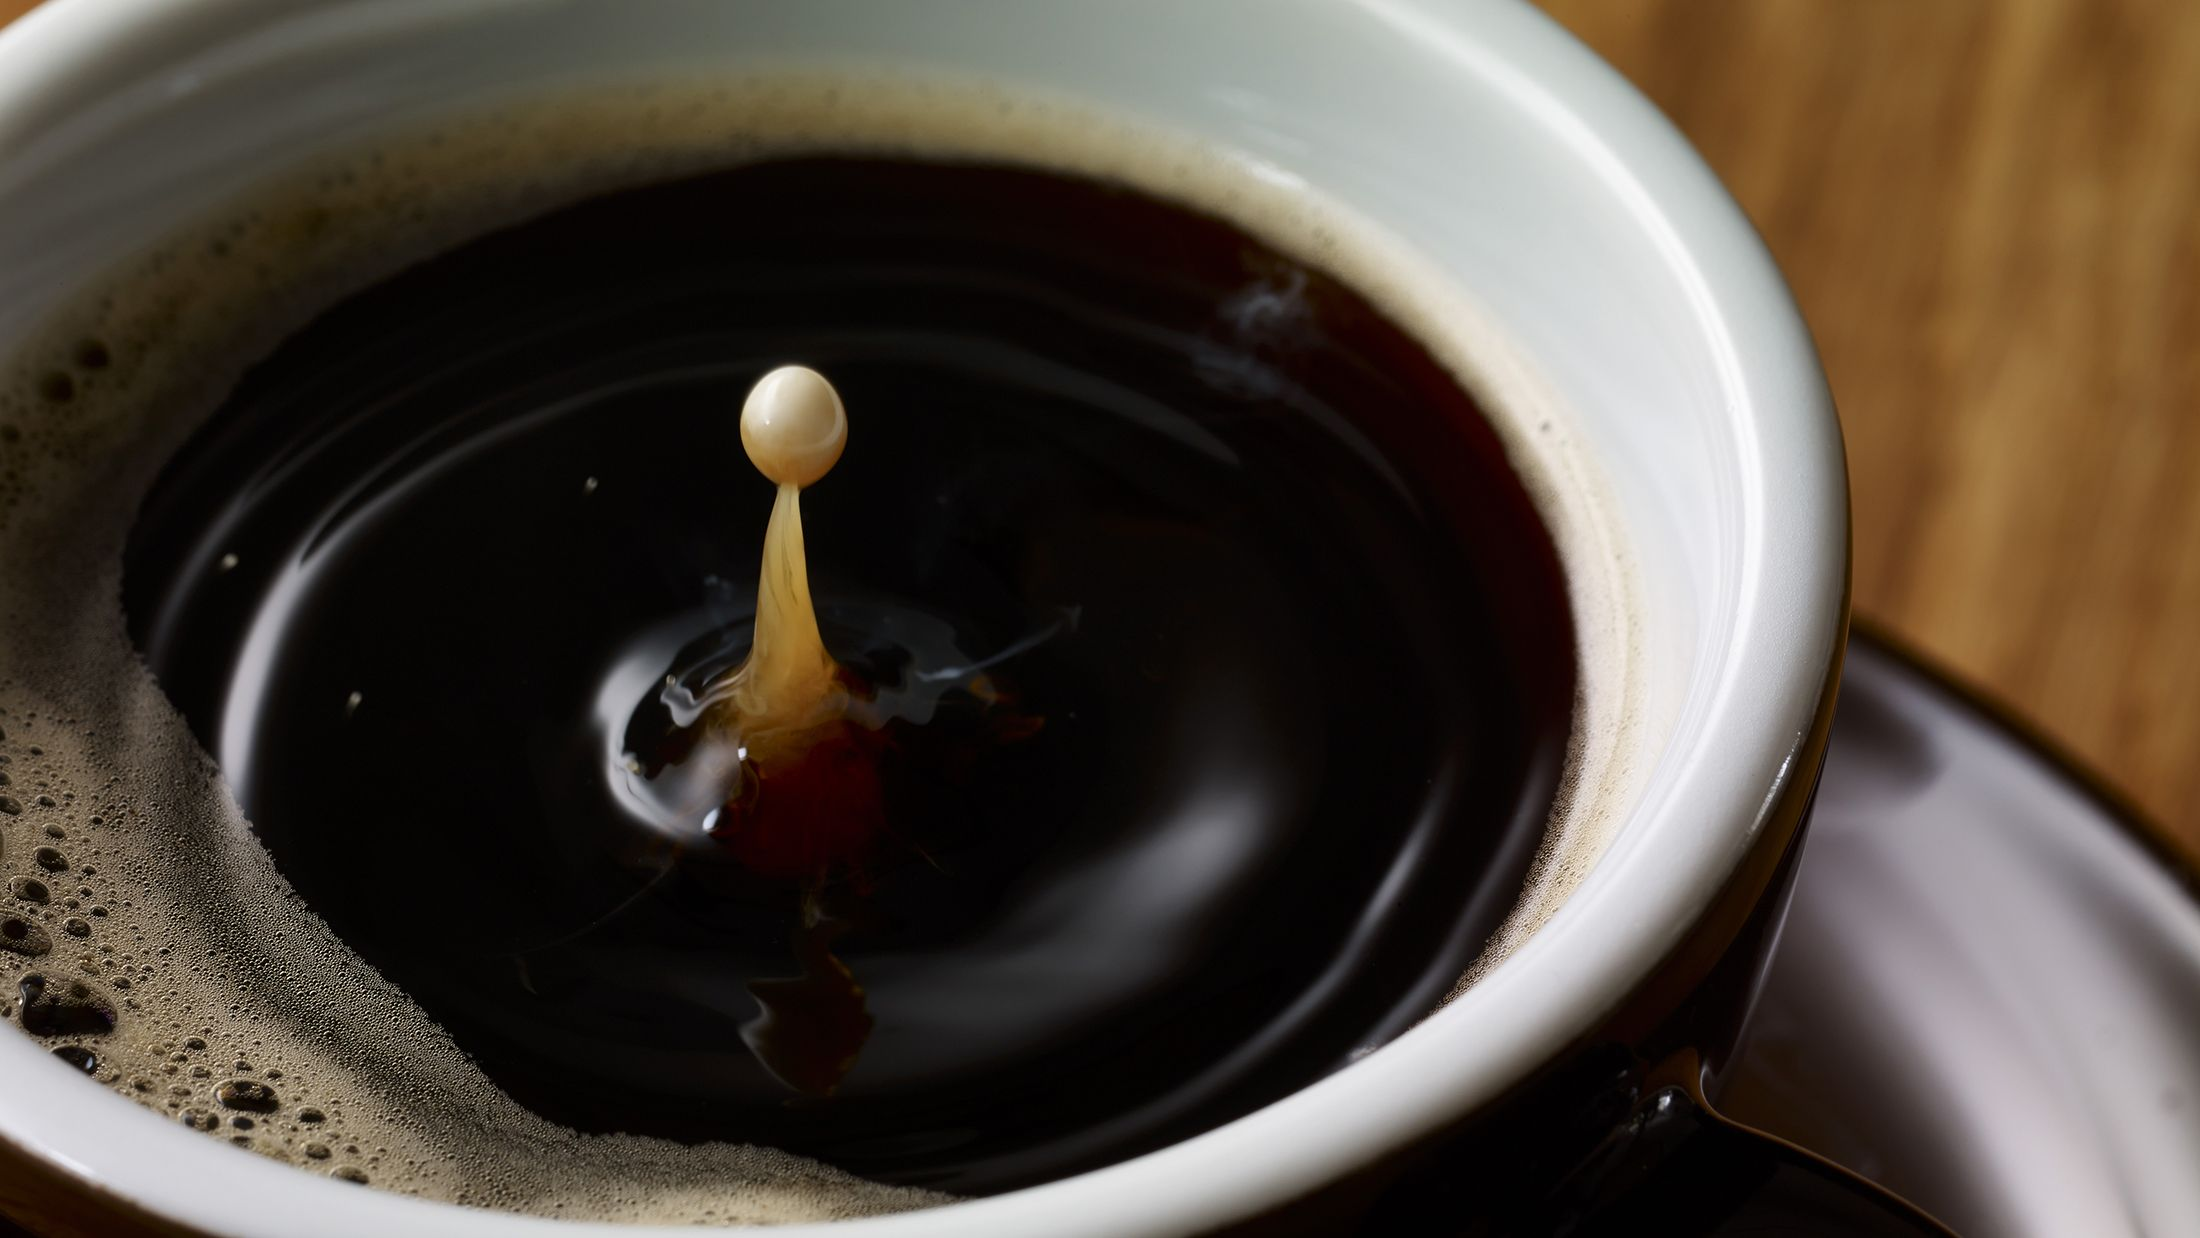 There's a right way to dose yourself with coffee so that youget the most of its performance-enhancing benefits.